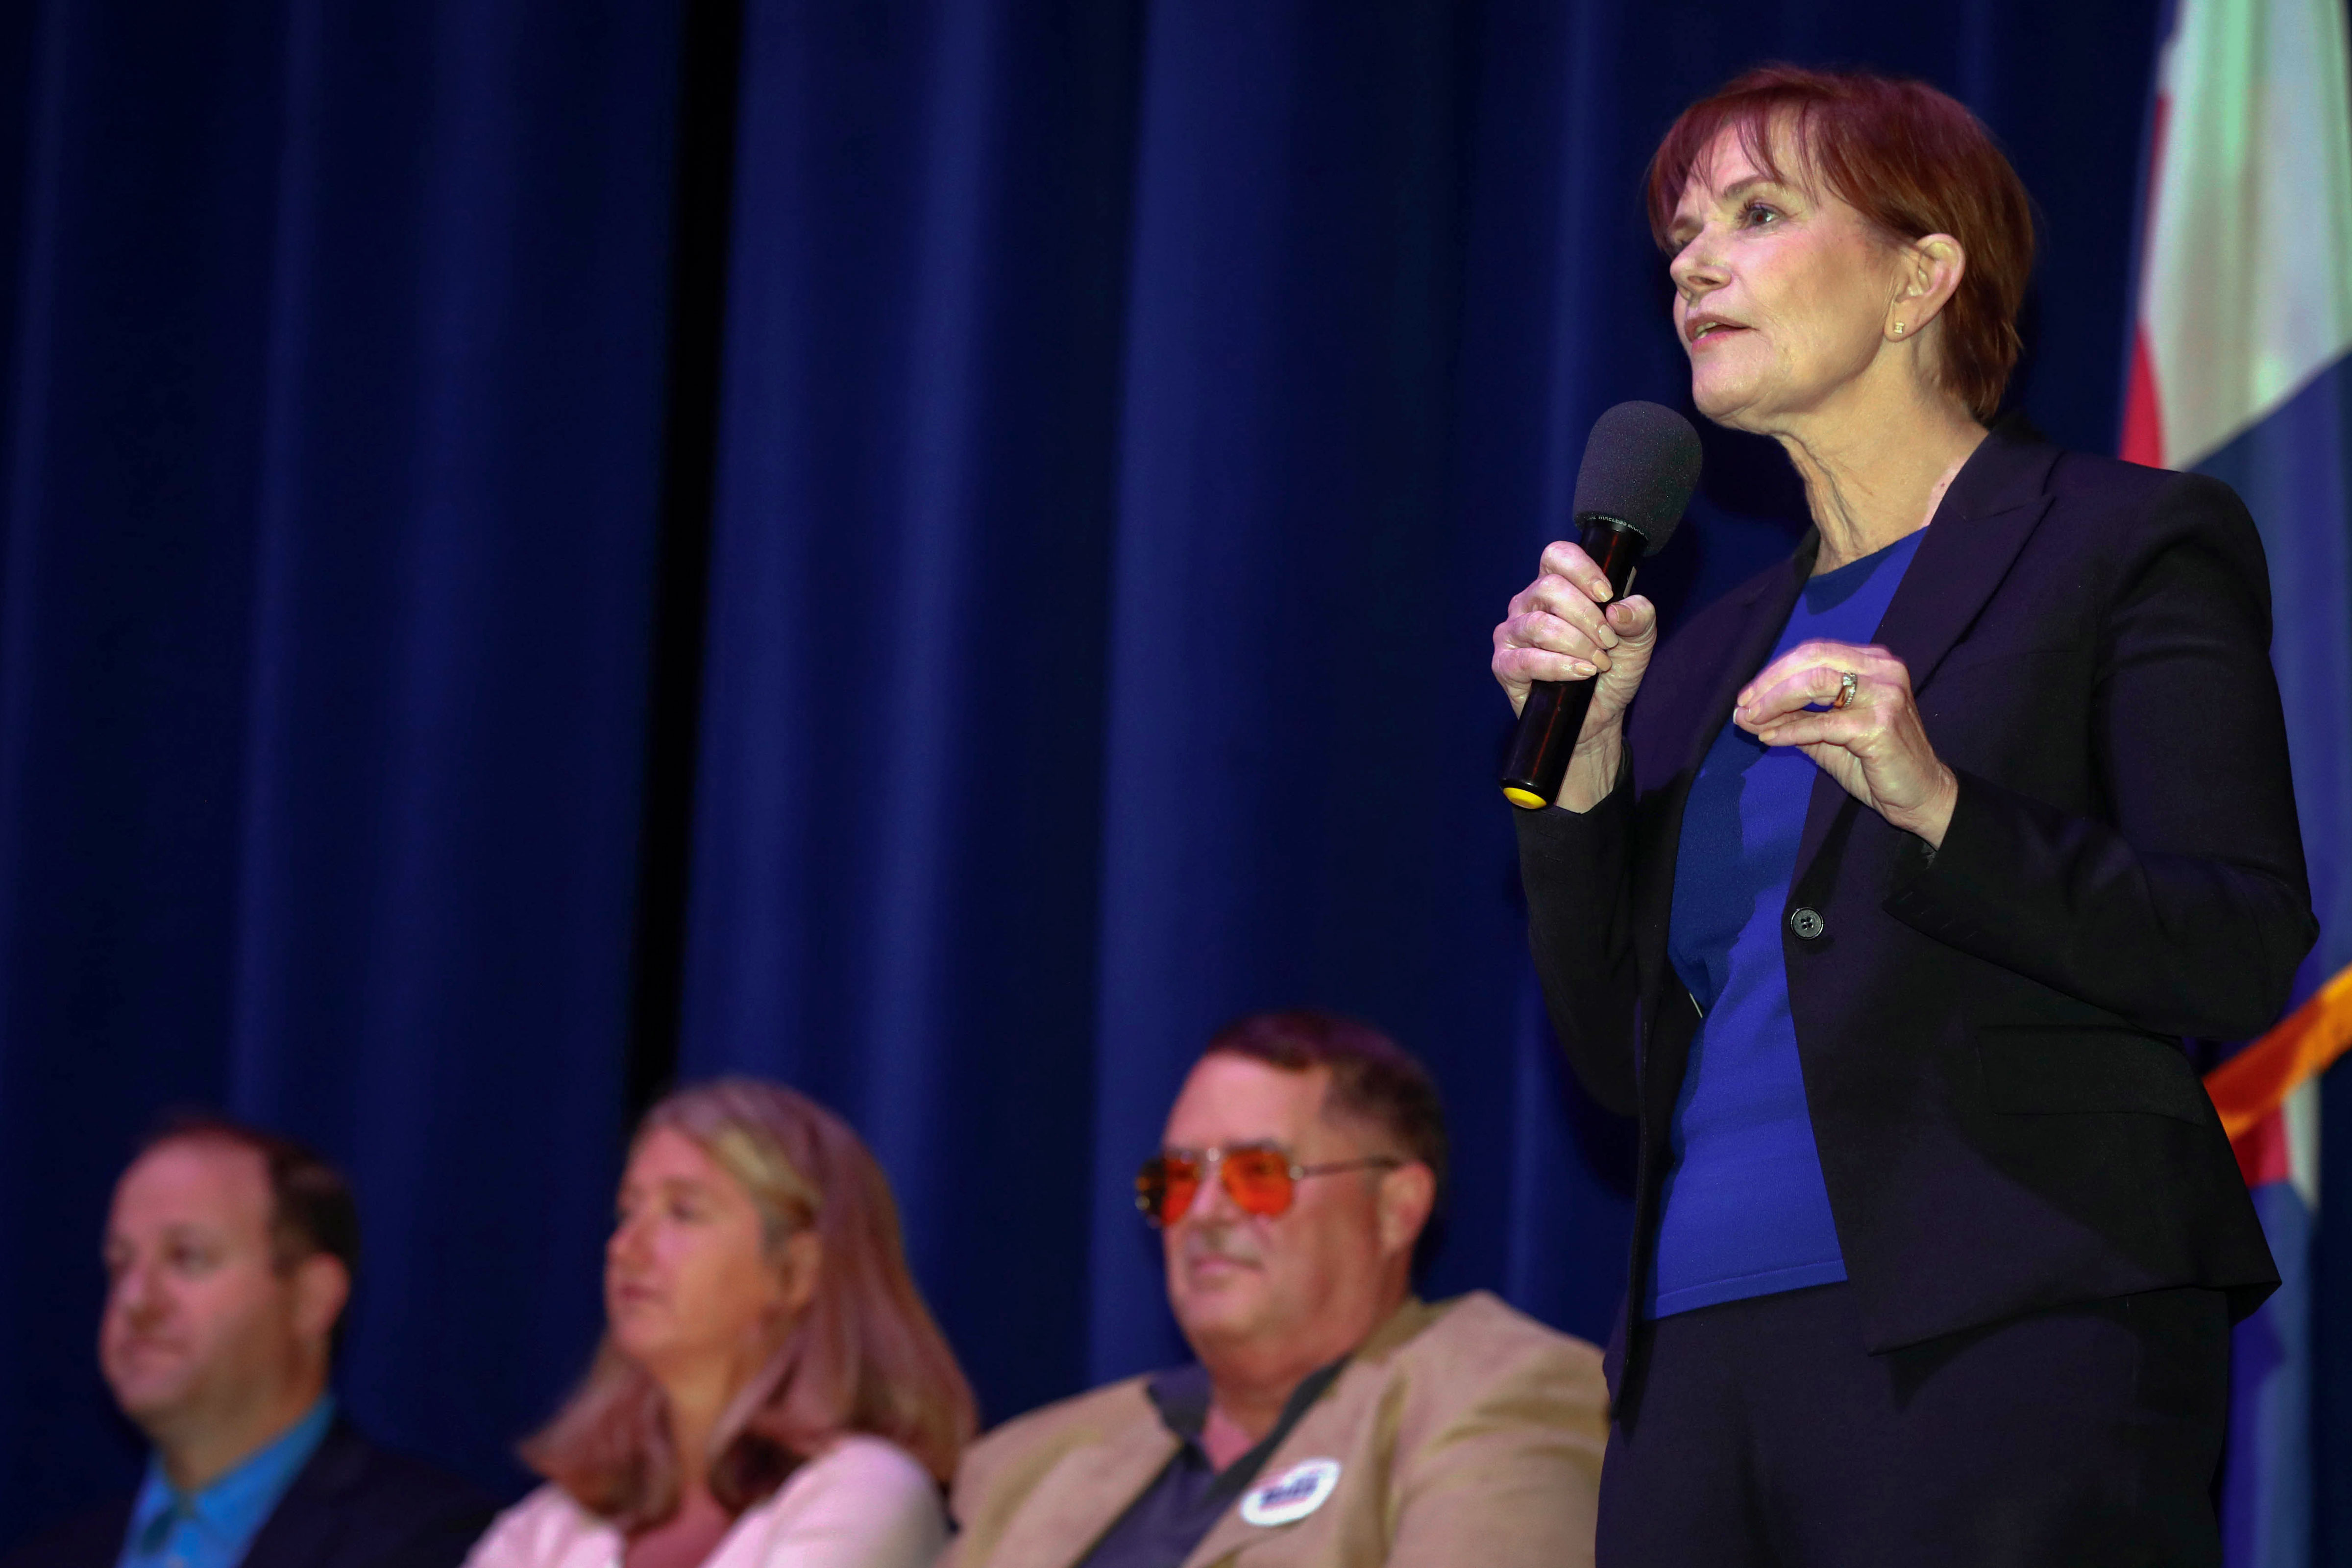 <p>Colorado Lt. Governor Donna Lynne, right, makes a point during a governor candidate debate sponsored by Never Again Colorado at Manual High School Saturday, May 19, 2018, in Denver. </p>